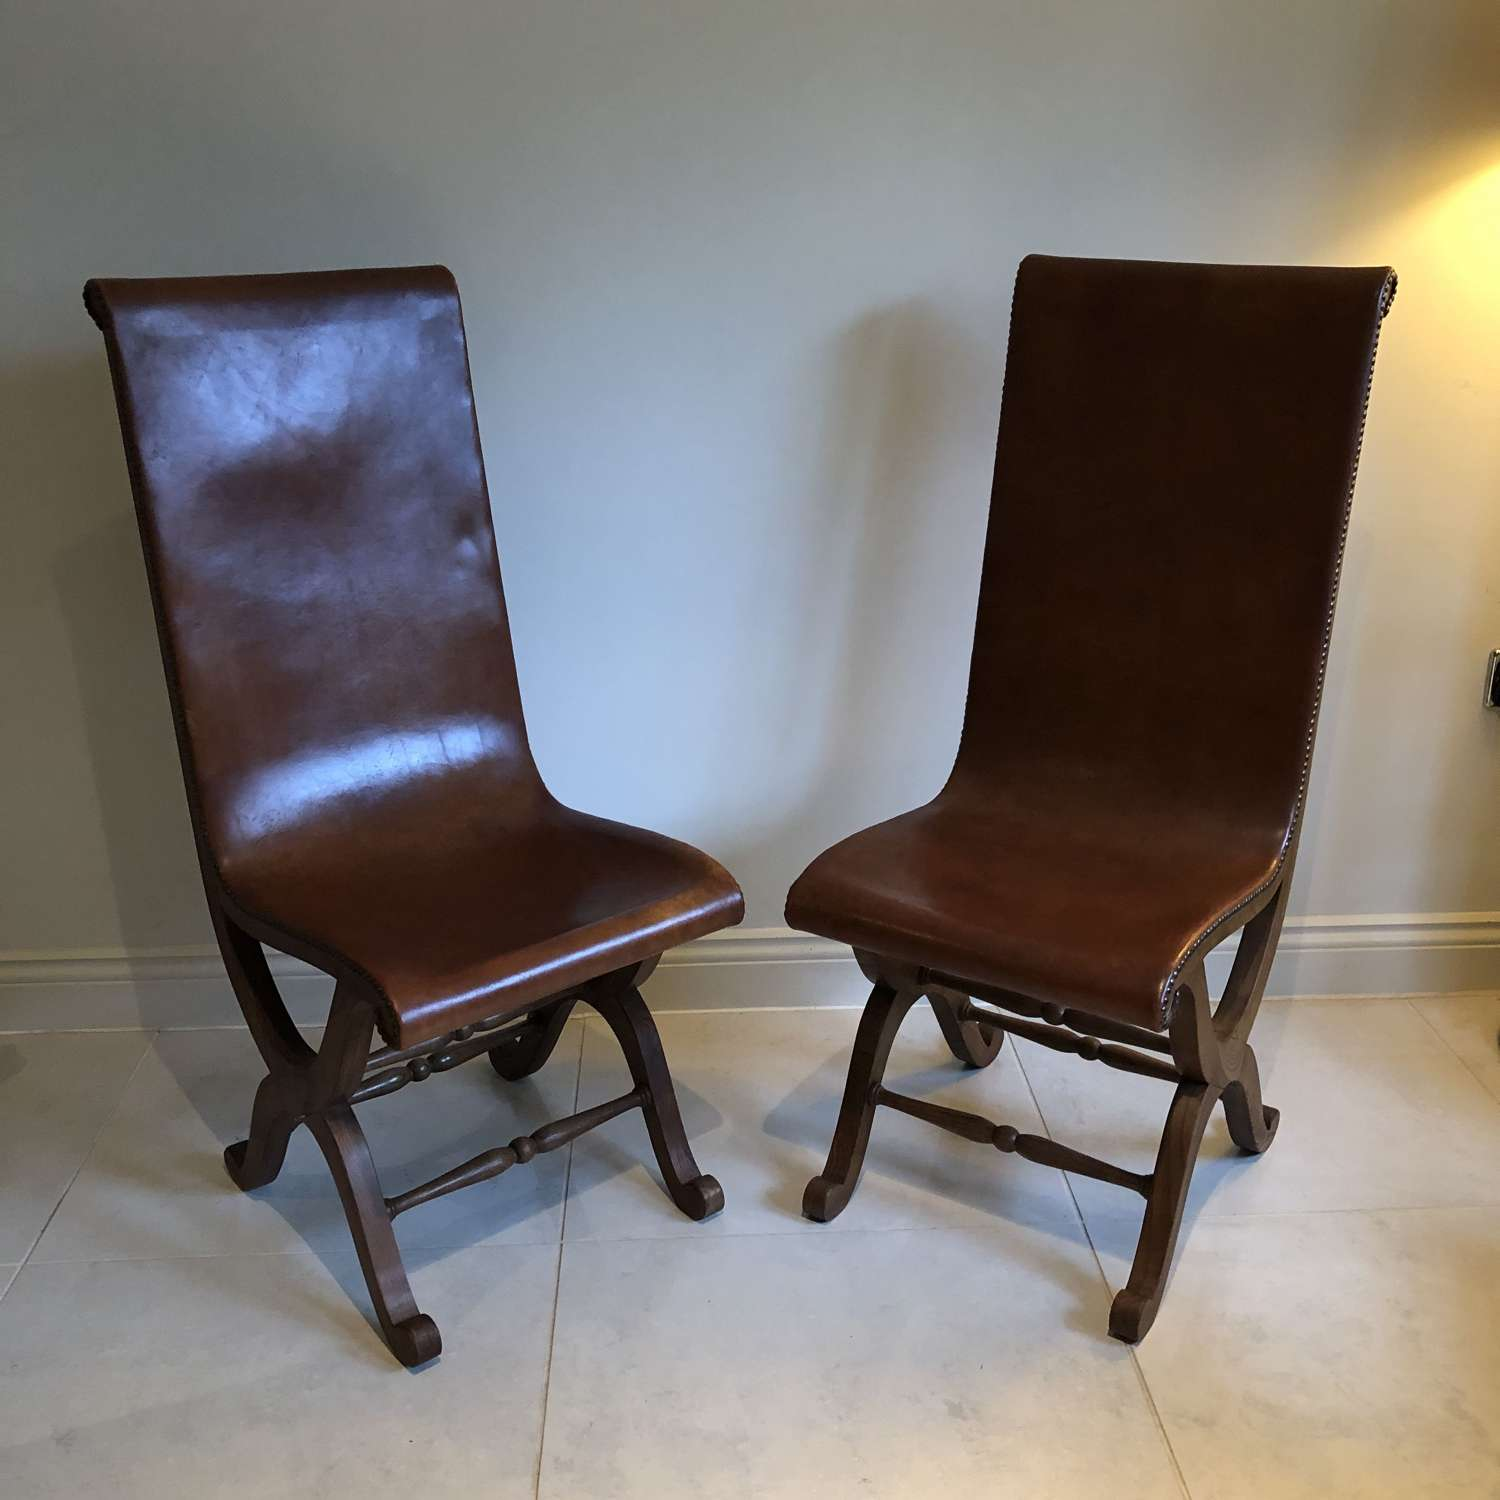 A pair of saddle leather side chairs